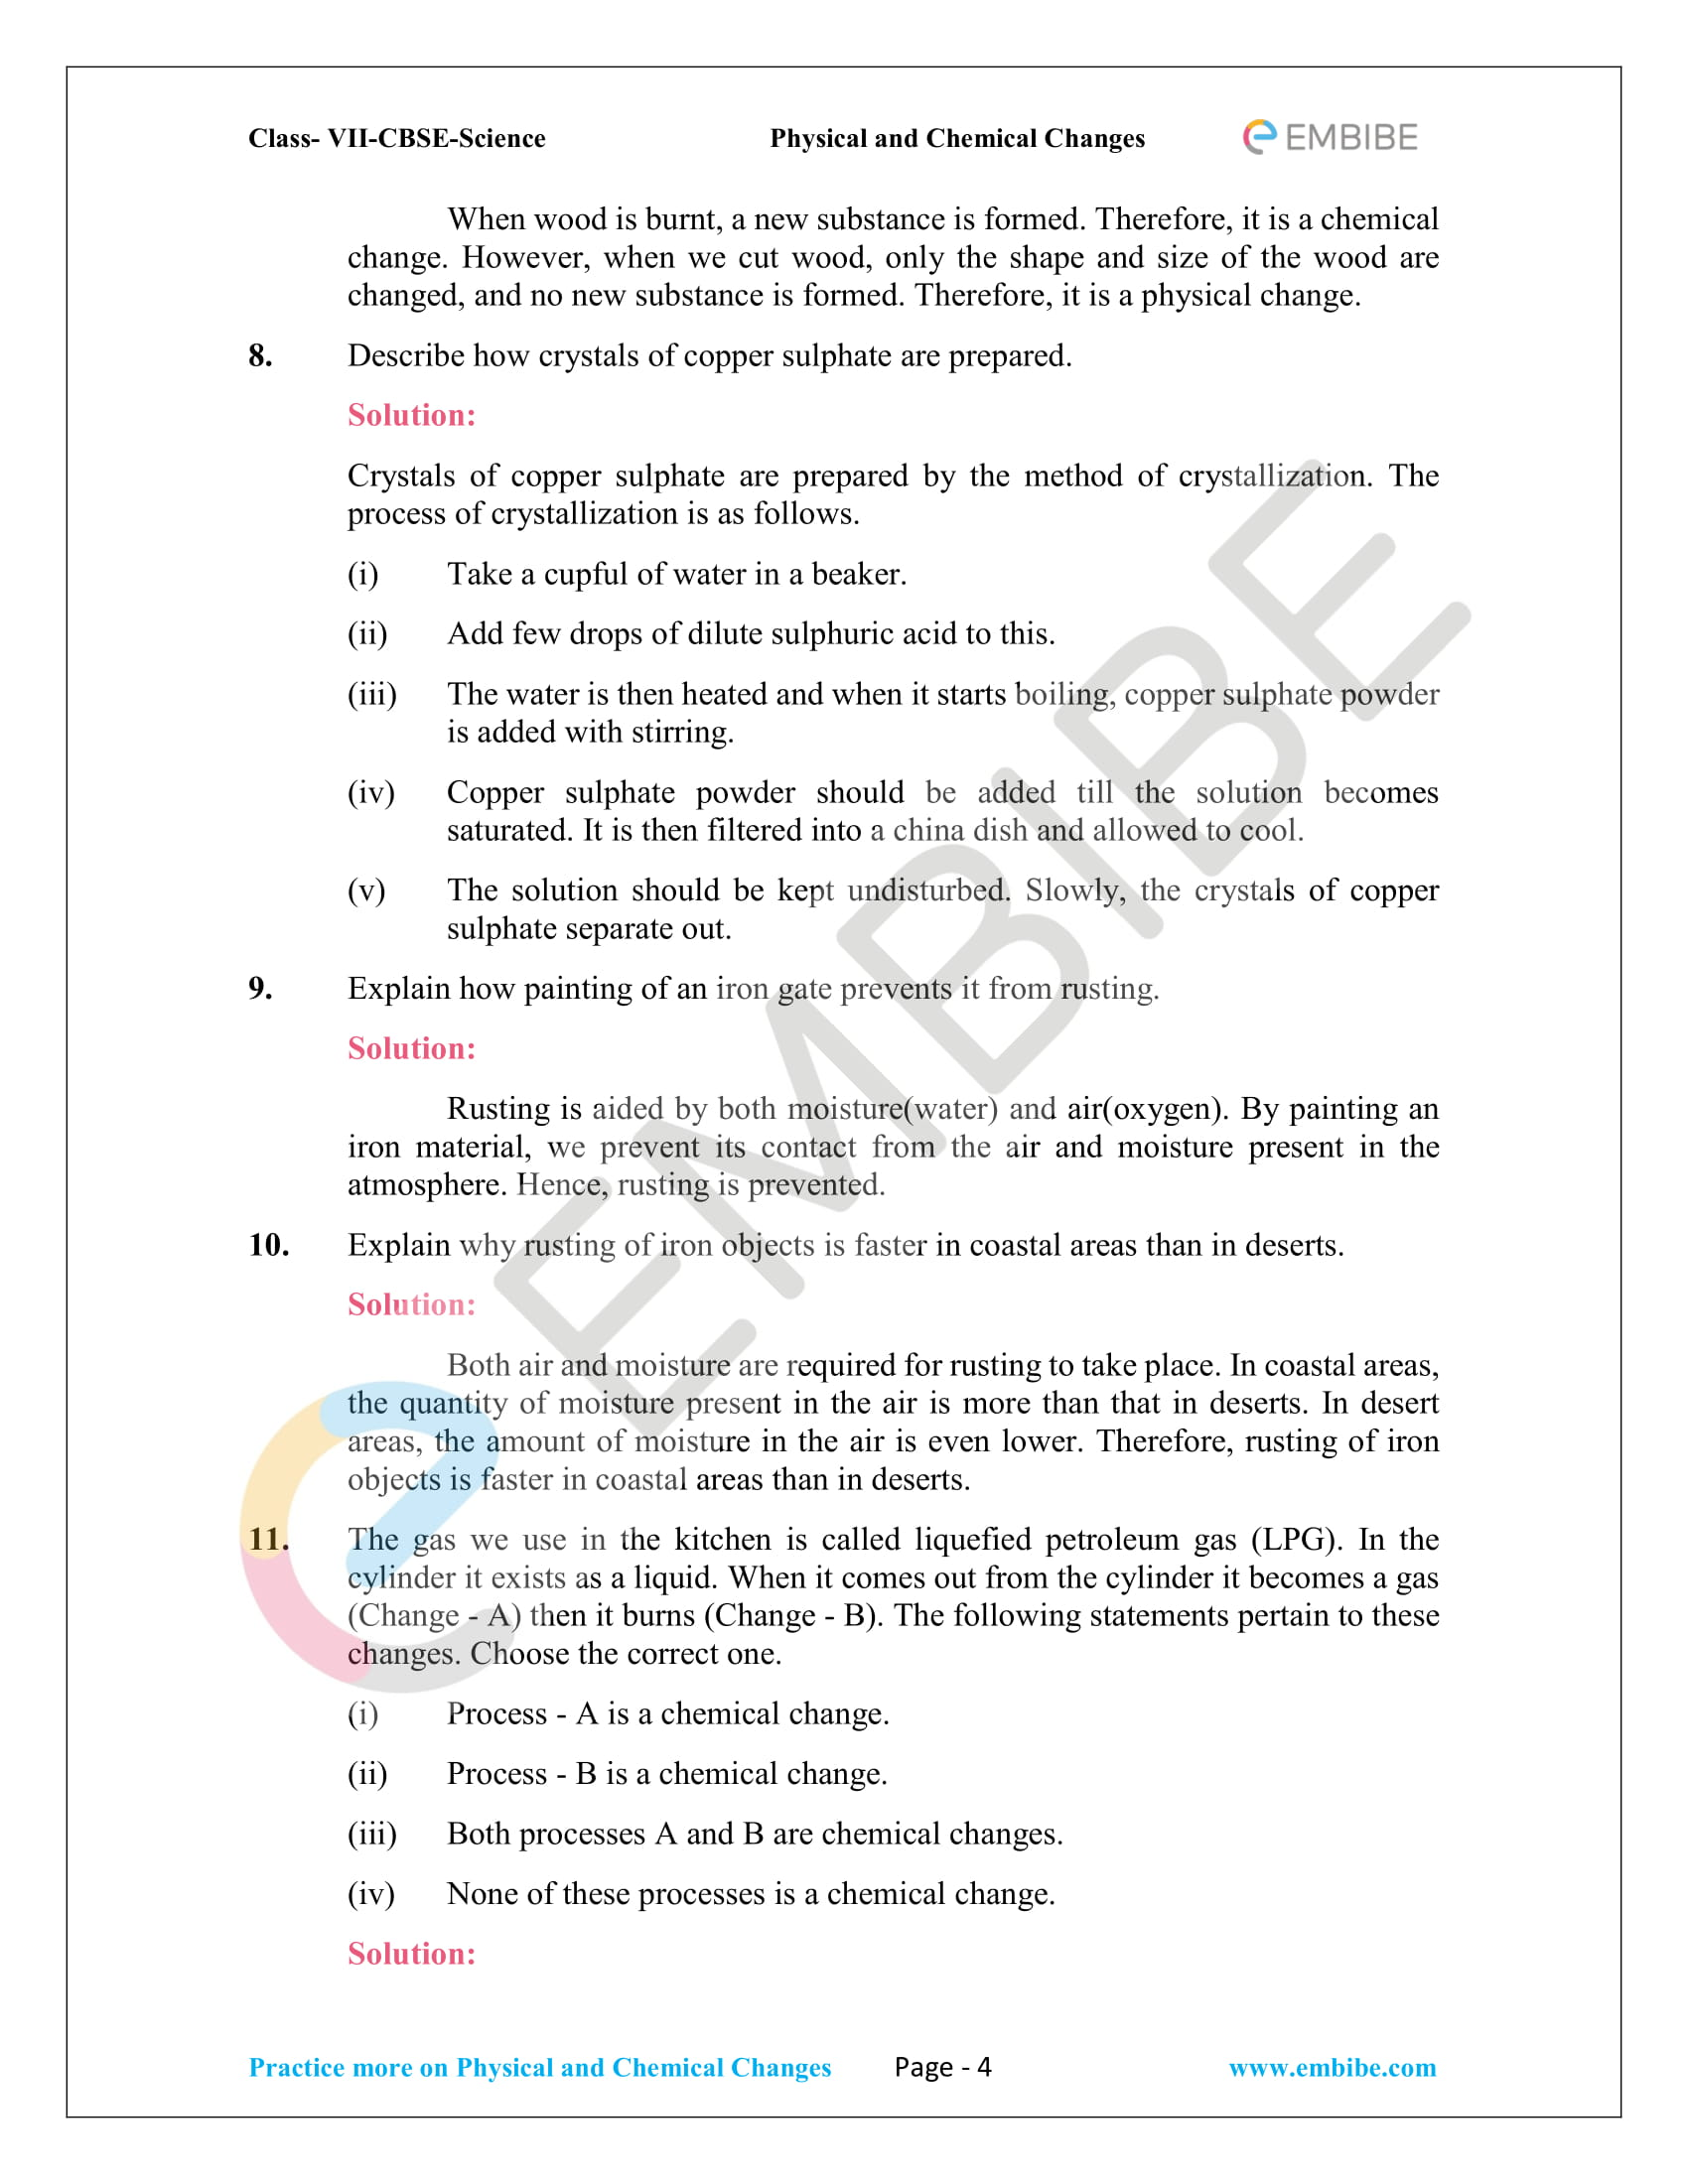 CBSE NCERT Solutions for Class 7 Science Chapter 6 - Physical and Chemical Changes